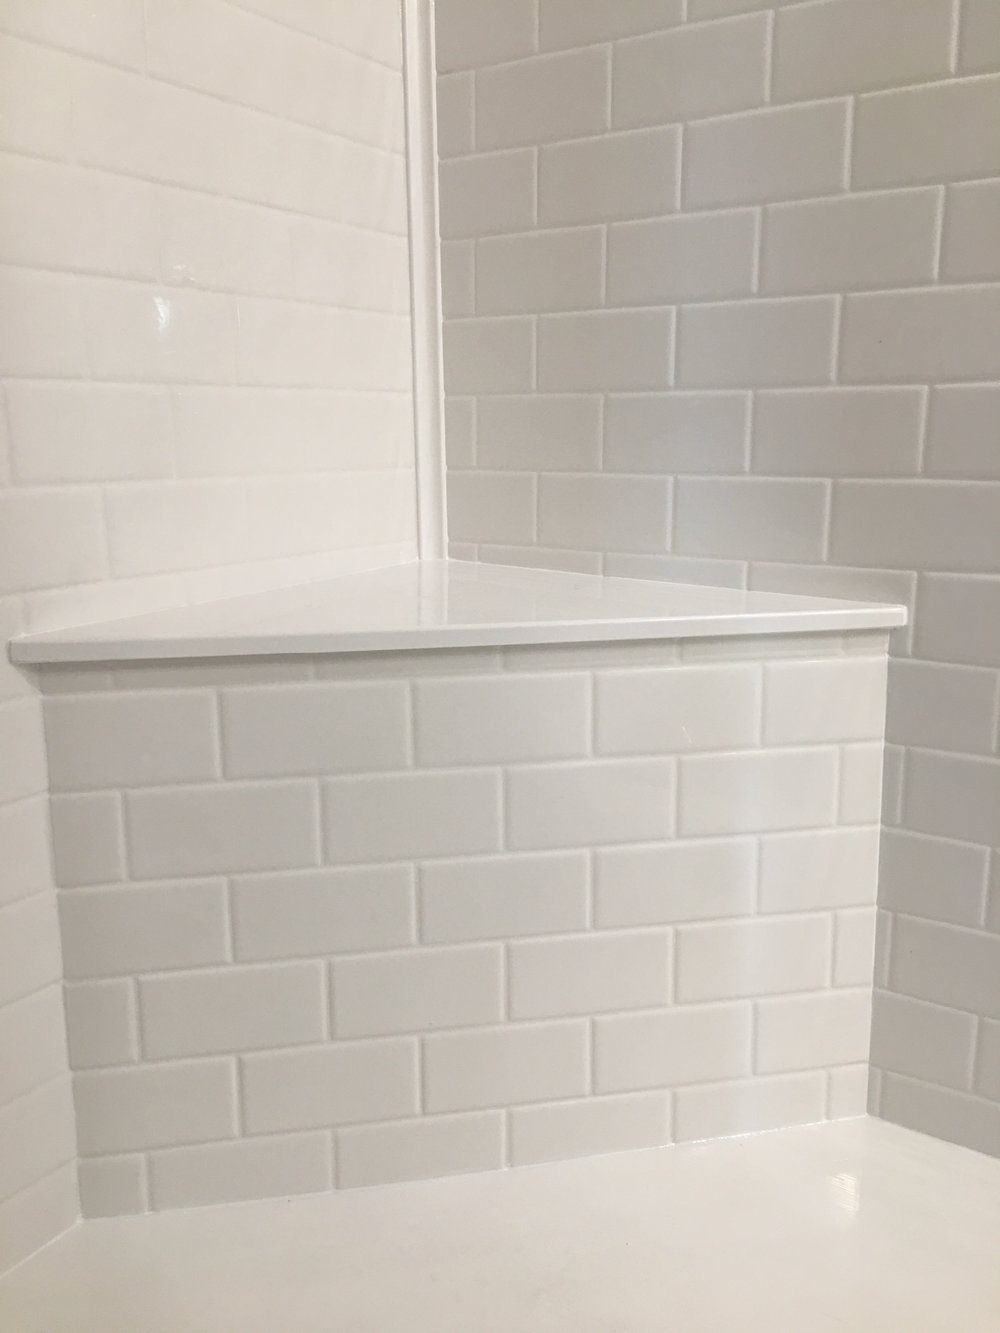 Subway Tile Texture - Add the look of subway tile to your shower without the worry of grout lines failing in the future.  Subway tile texture is available in every color we make can add a beautiful accent to your shower or